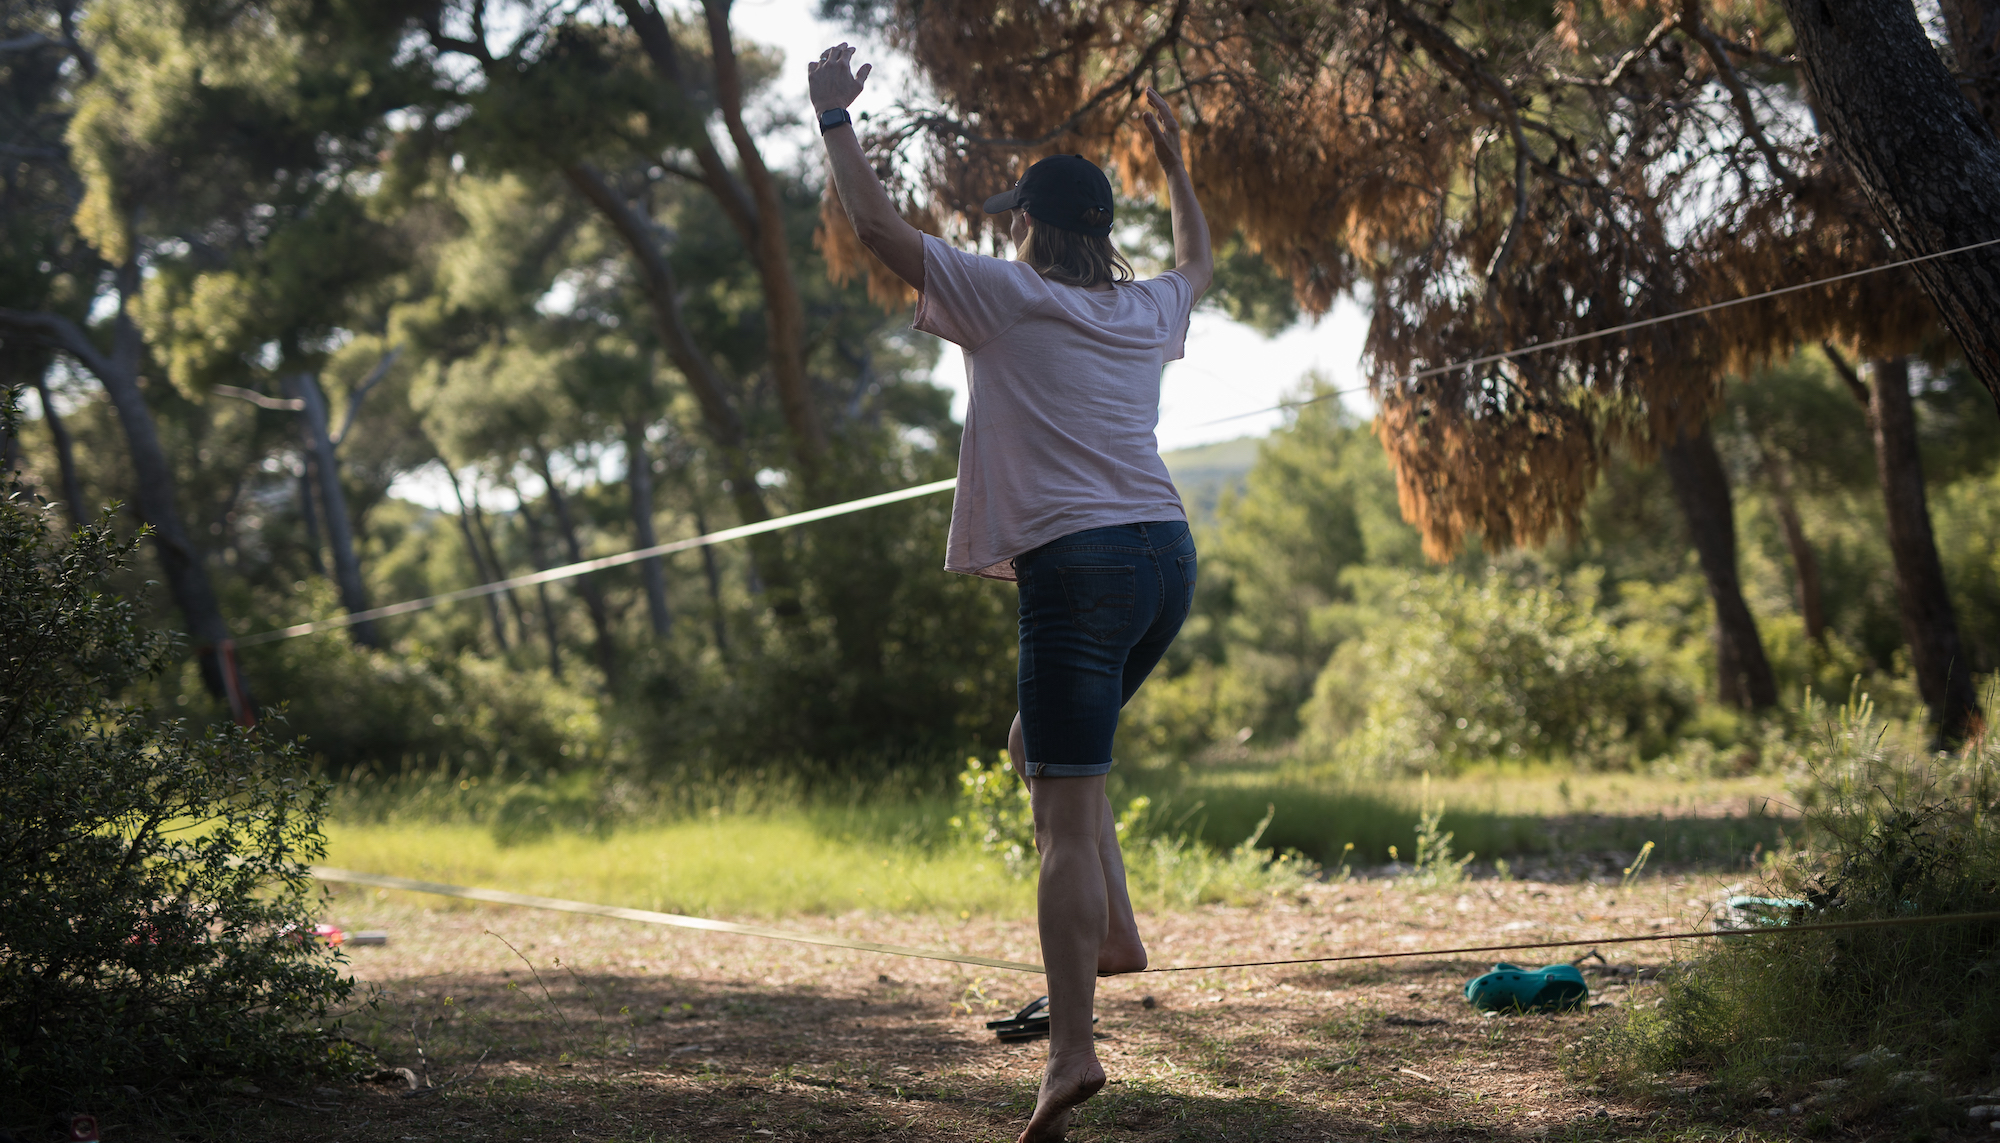 First step on the Slackline